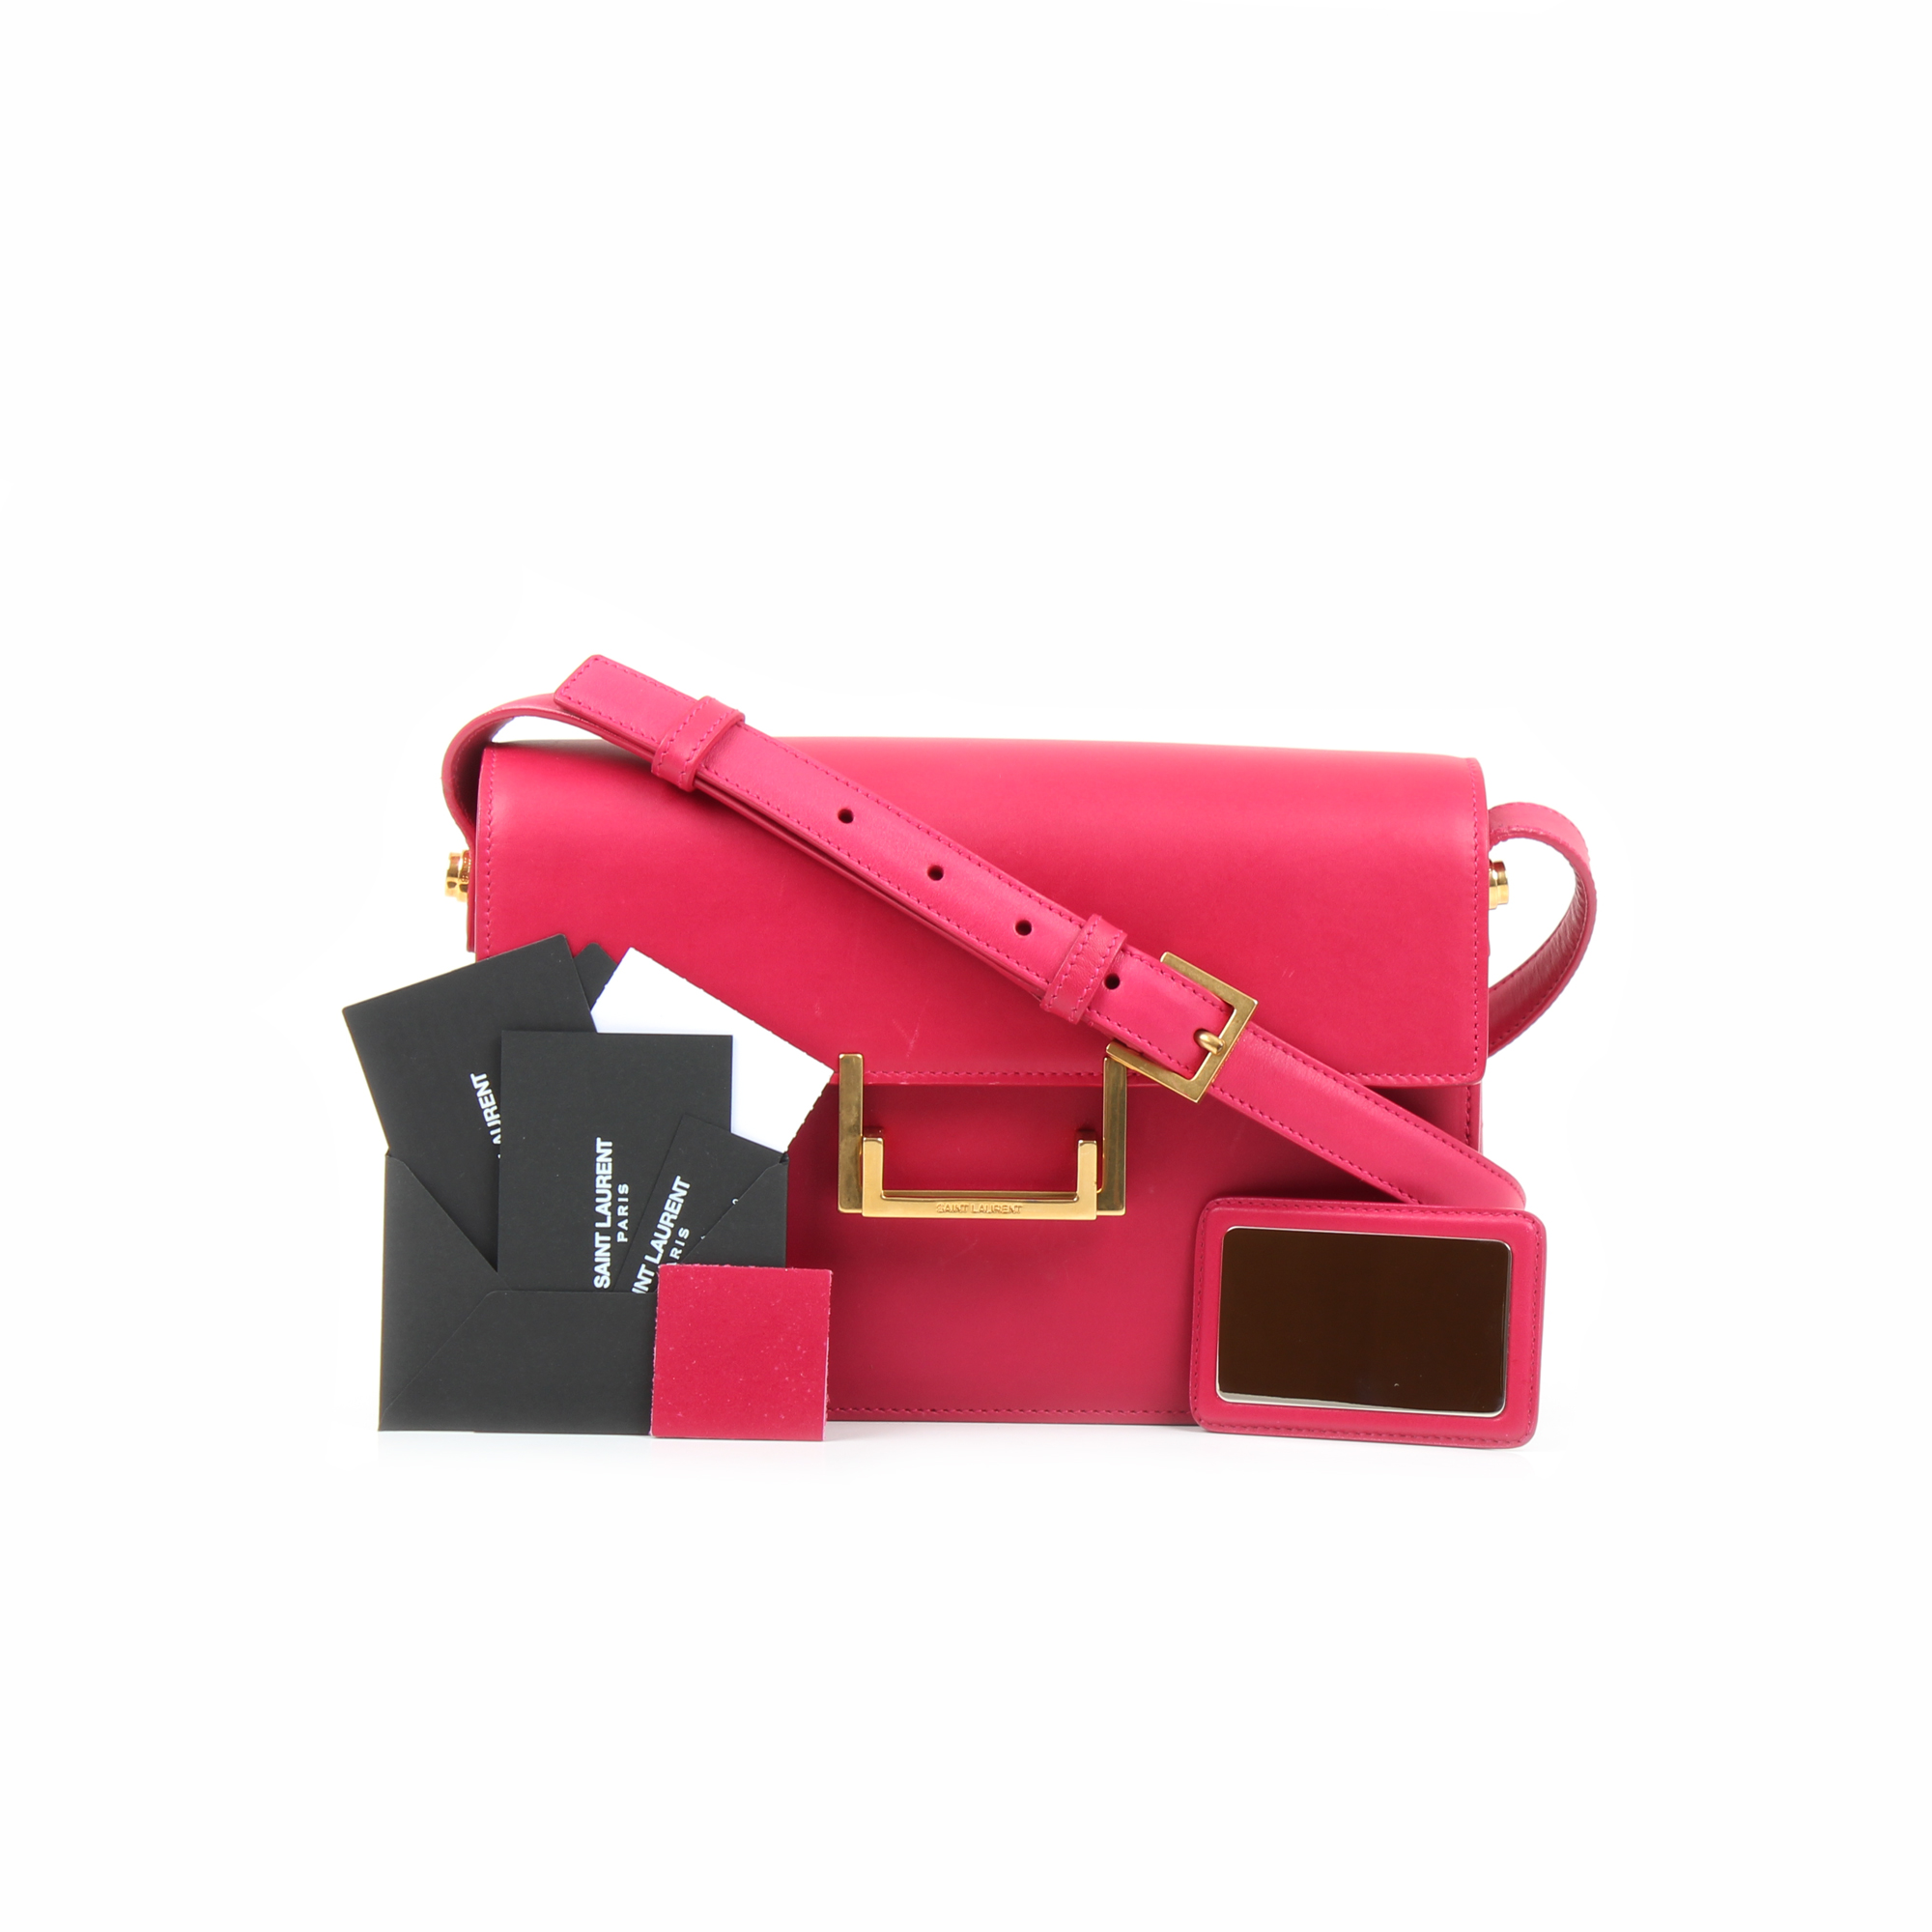 Extras image of Yves Saint Laurent Lulu shoulder bag